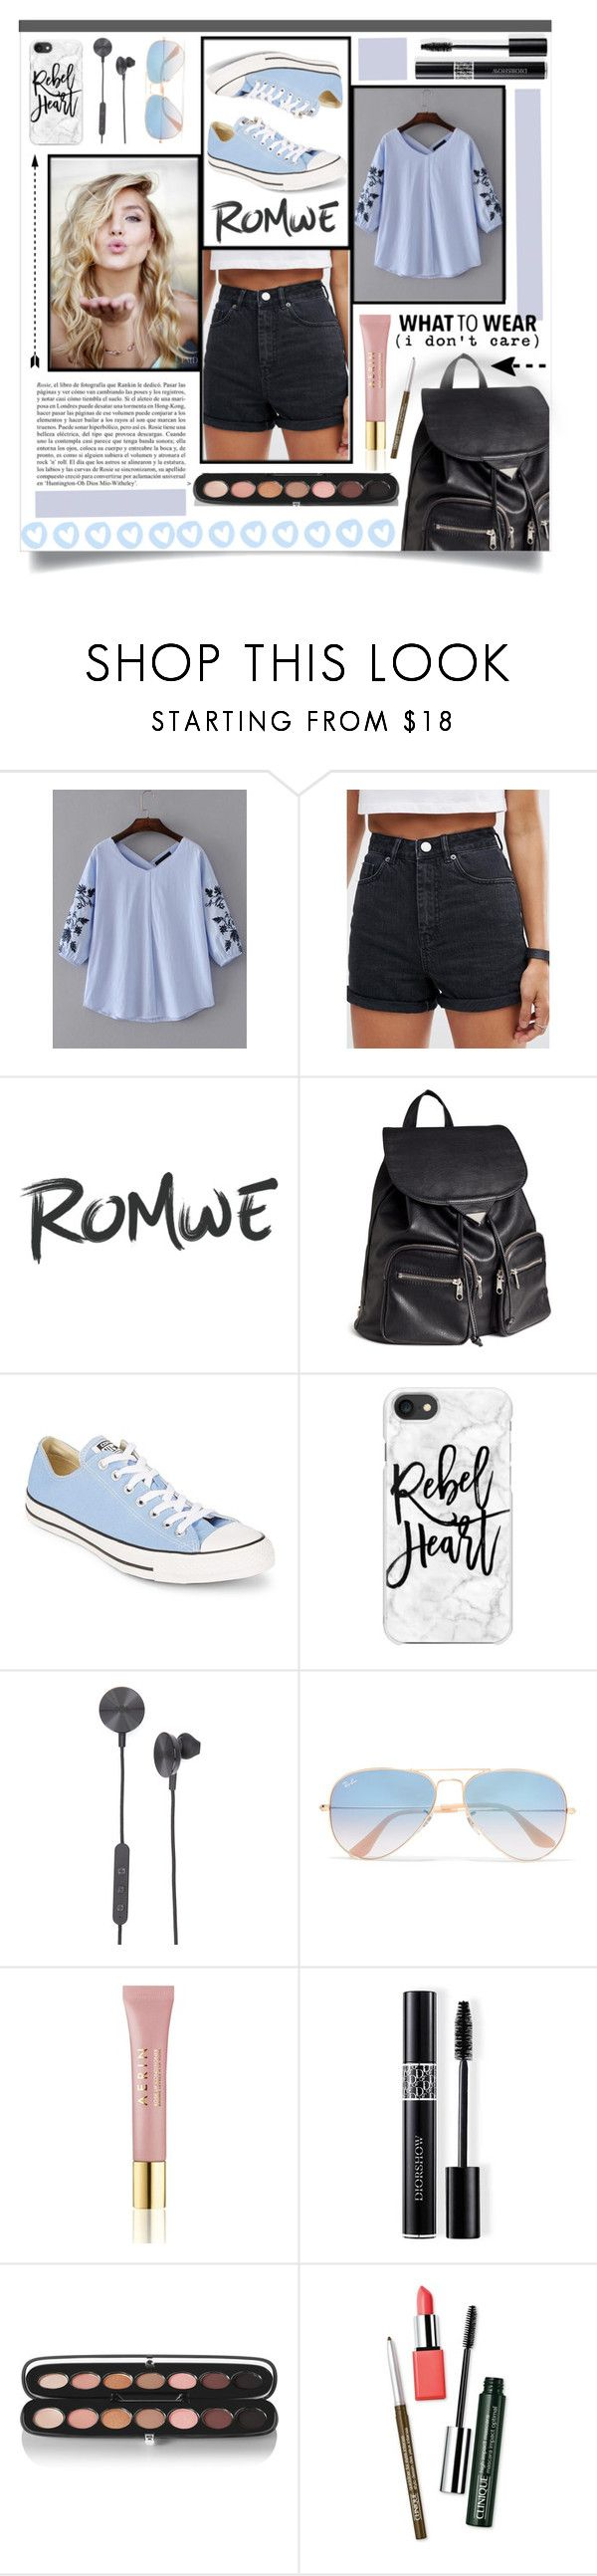 """Untitled #60"" by alyssa-1221 ❤ liked on Polyvore featuring ASOS, H&M, Converse, Casetify, i.am+, Ray-Ban, Whiteley, AERIN, Christian Dior and Marc Jacobs"